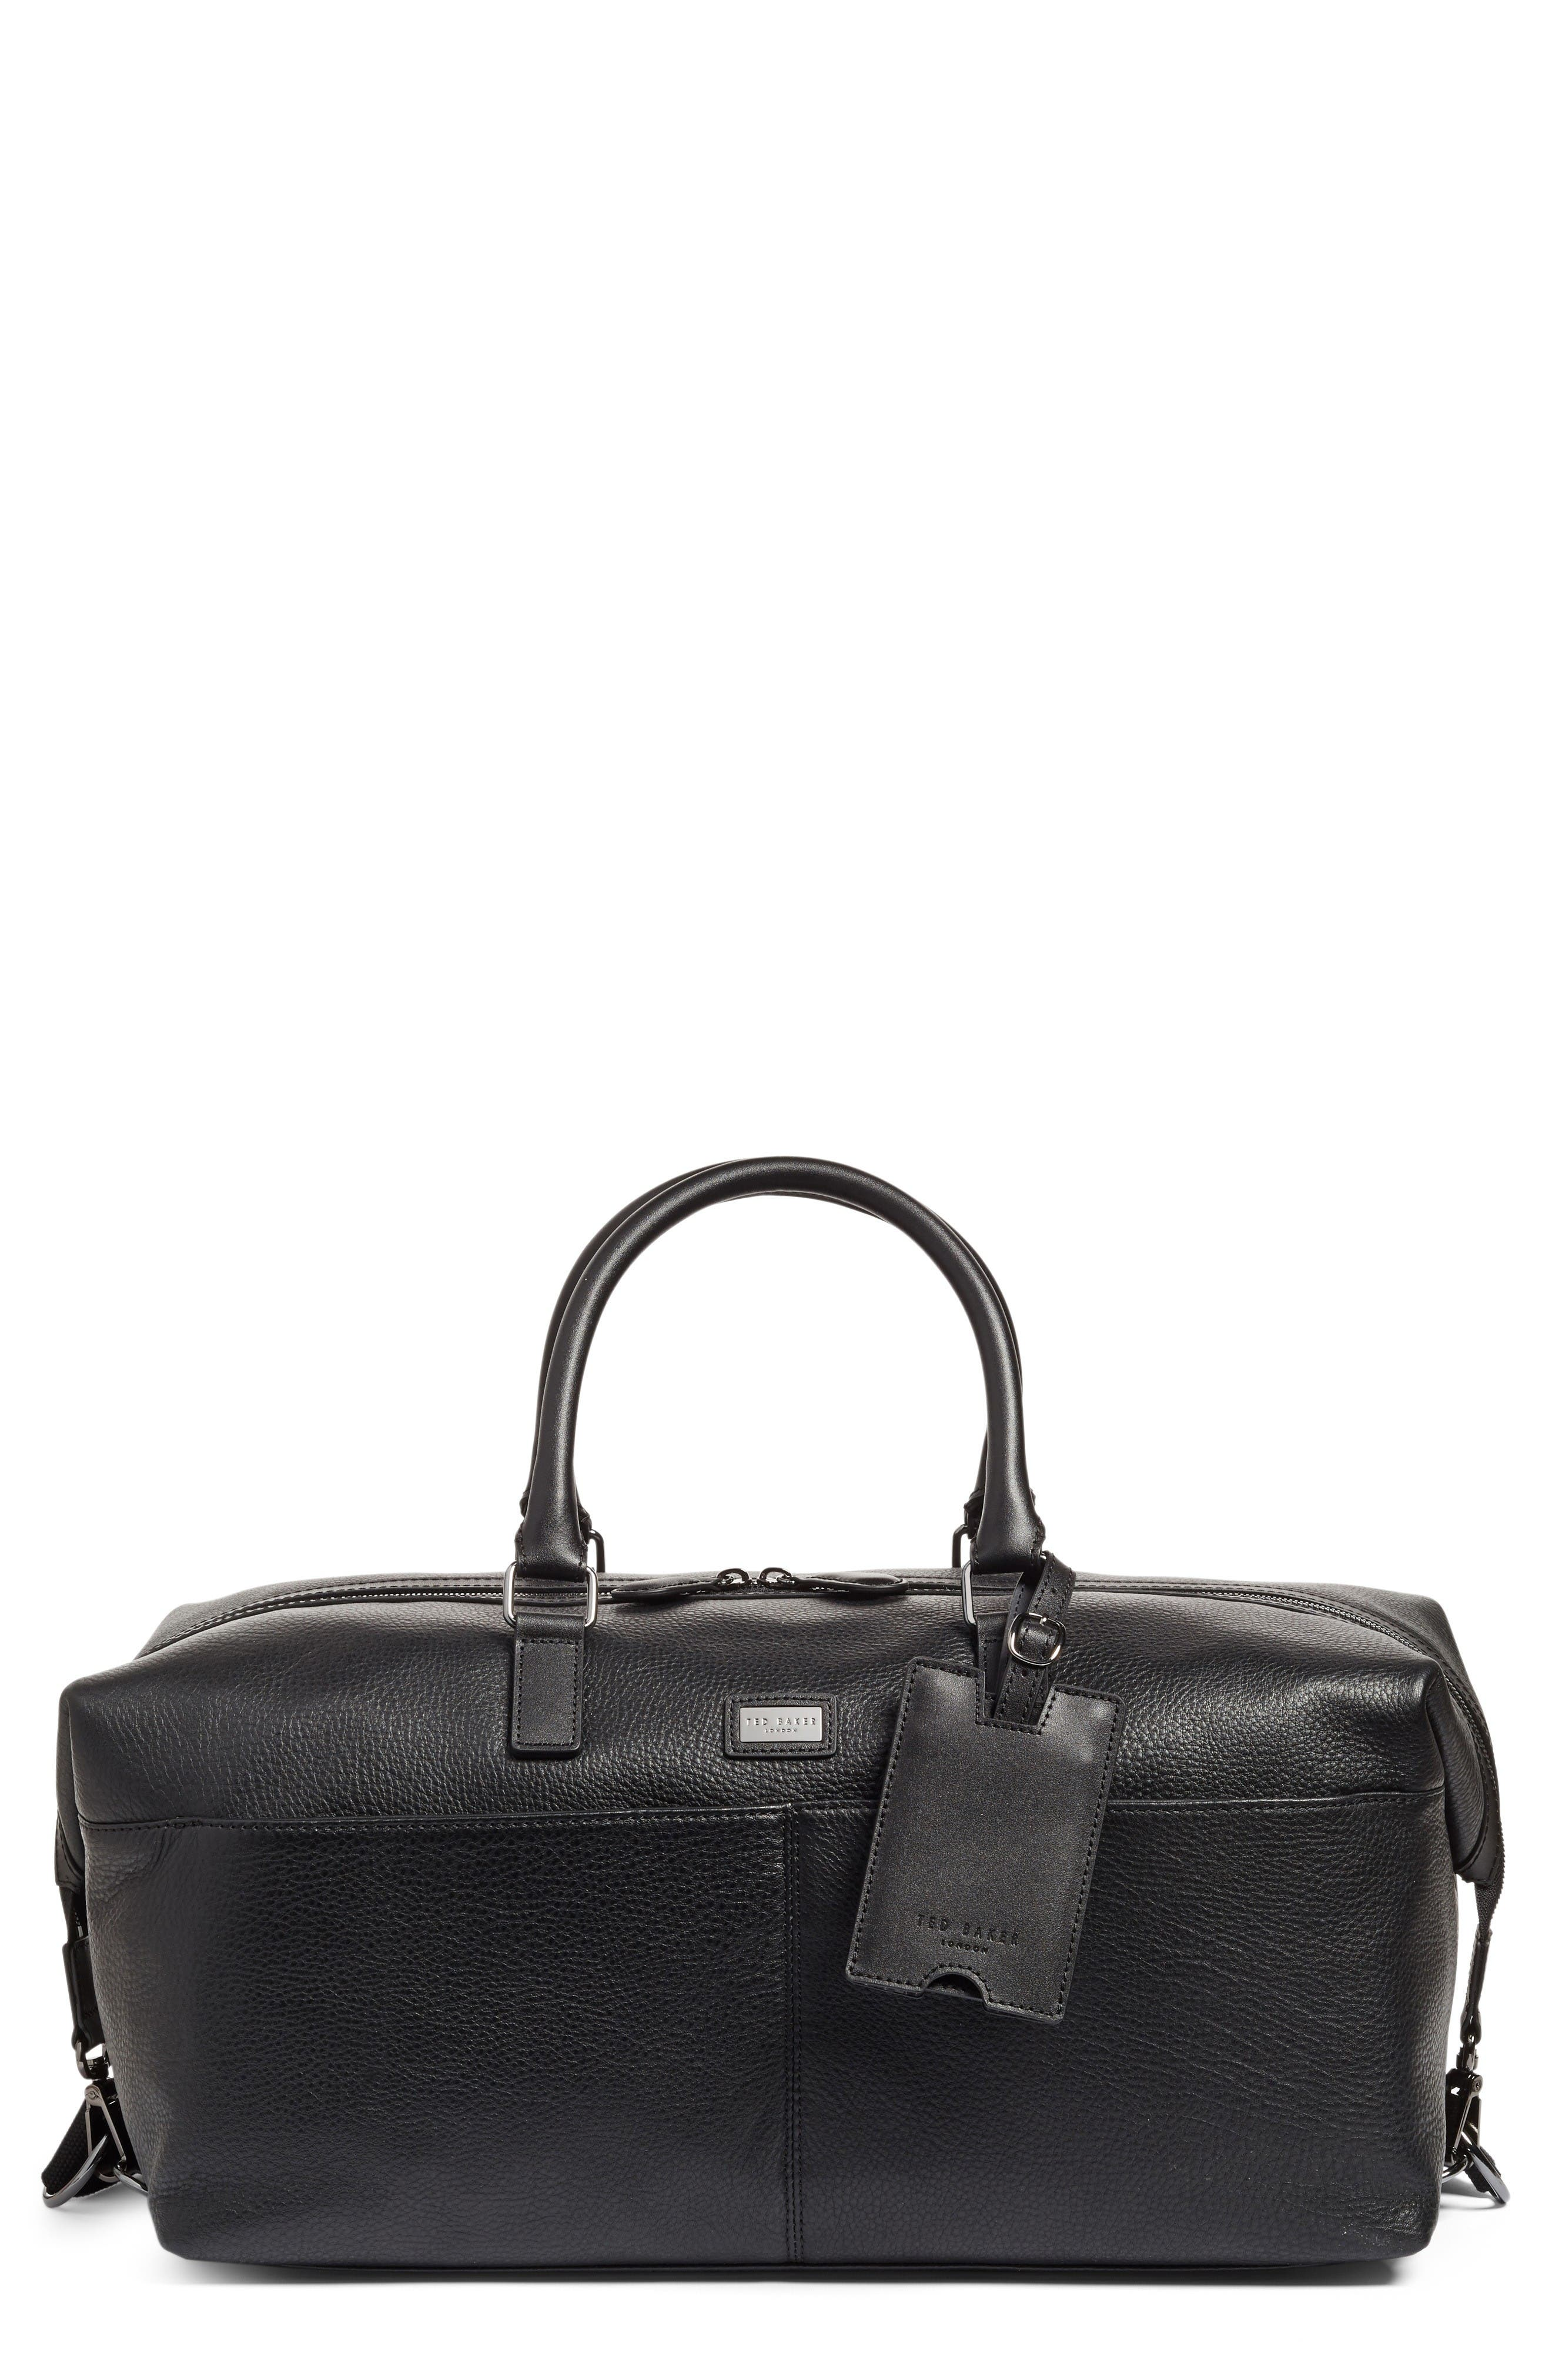 TED BAKER LONDON Leather Duffel Bag